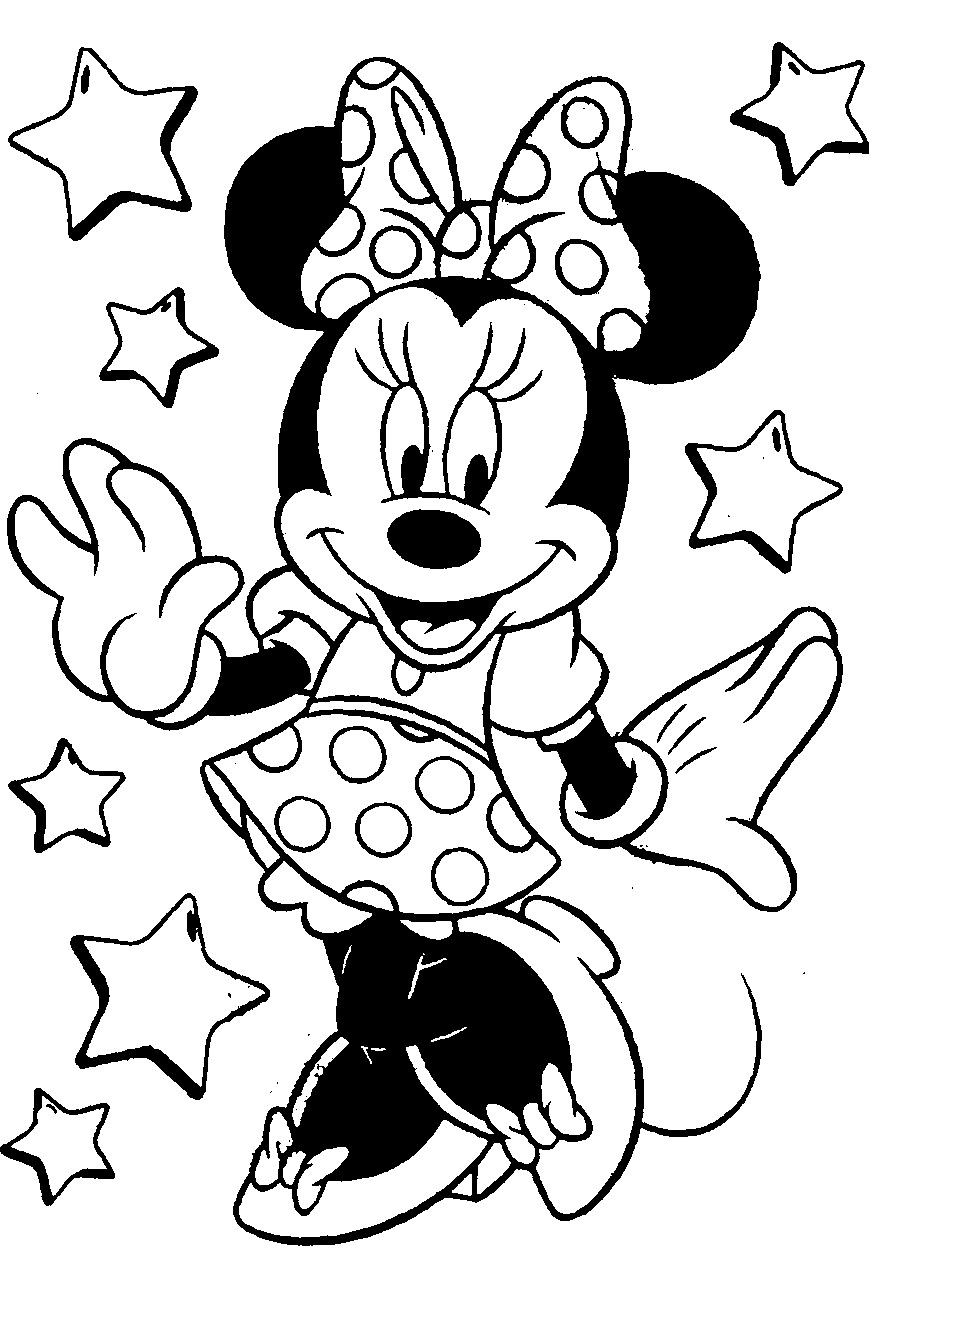 Mickey Mouse Coloring Pages Toddler  coloring pictures of minnie mouse Google Search